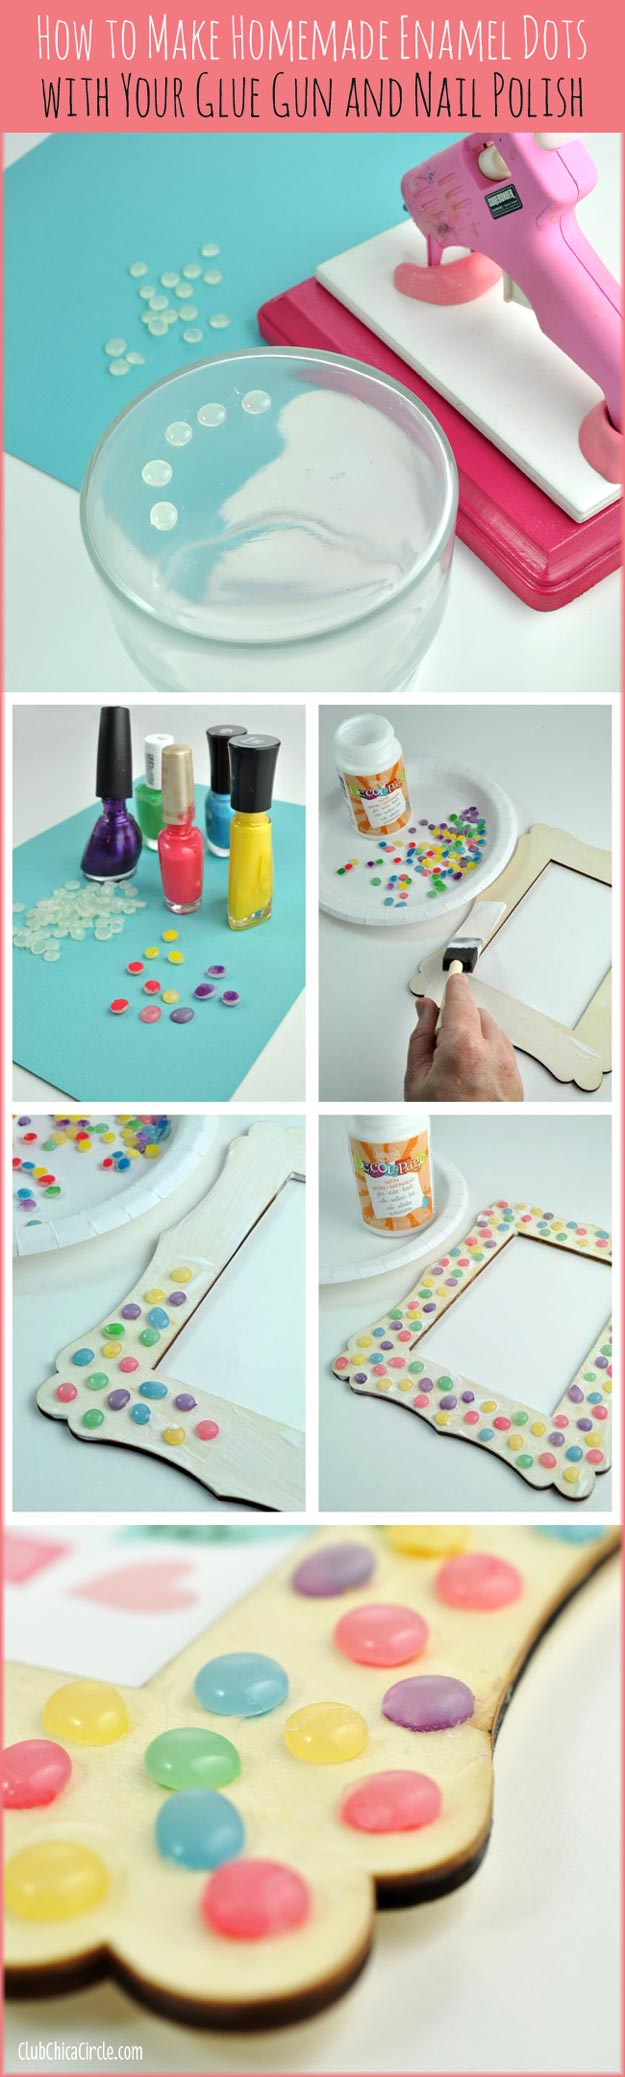 31 incredibly cool diy crafts using nail polish for Cool fun easy crafts